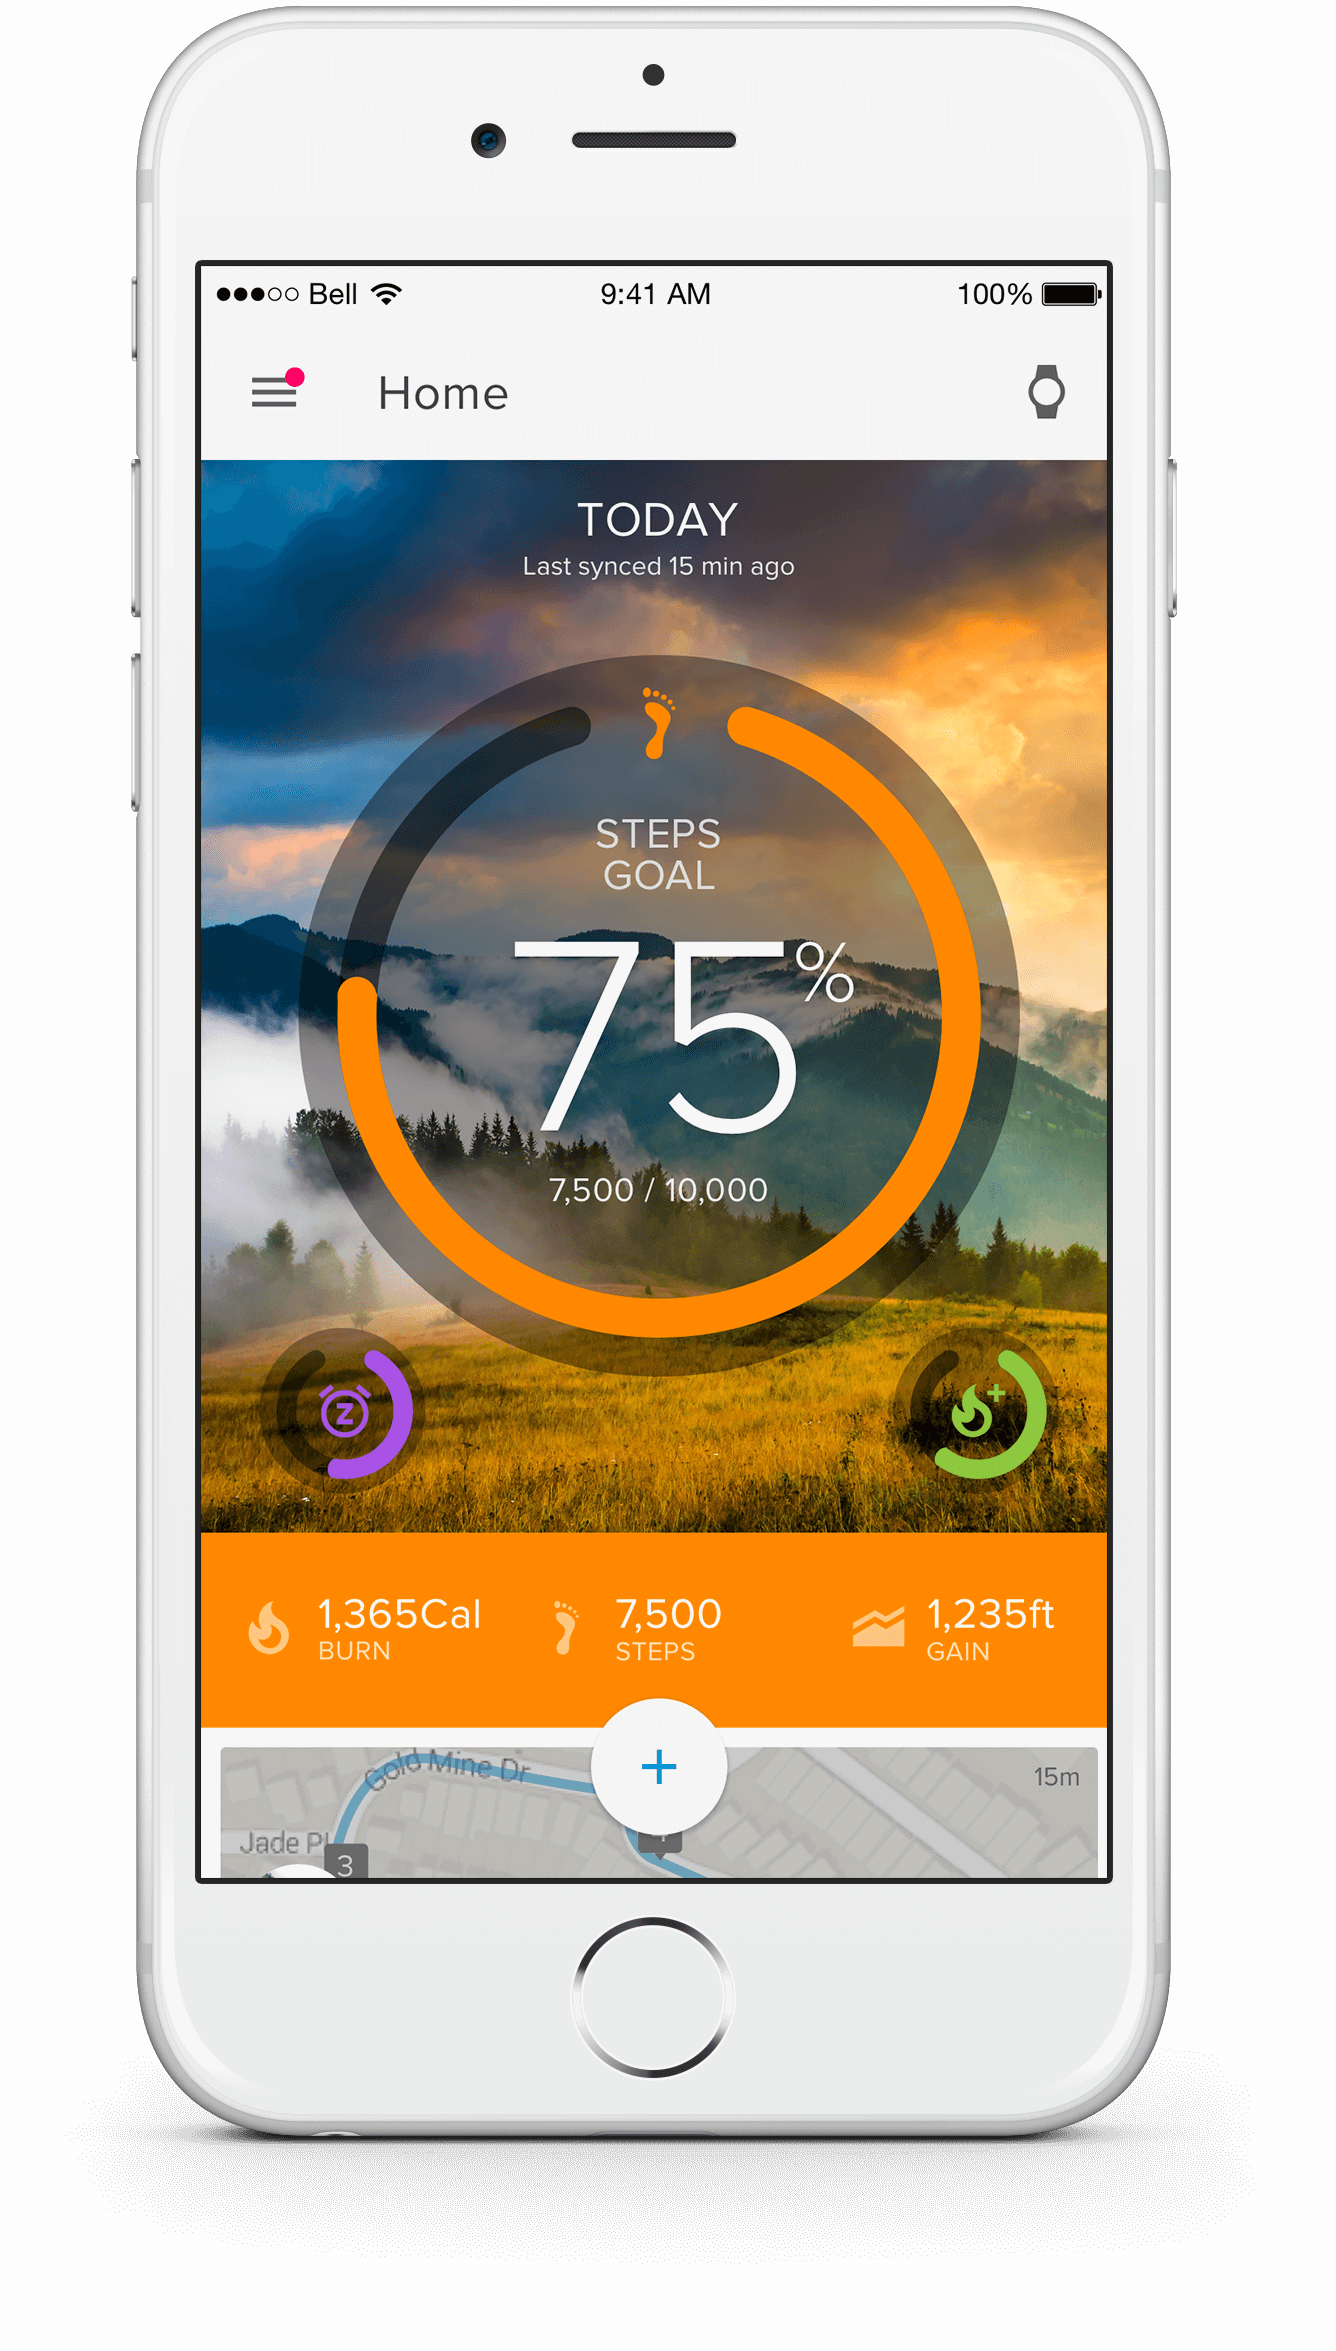 iFit Link — Track your stats with ease.